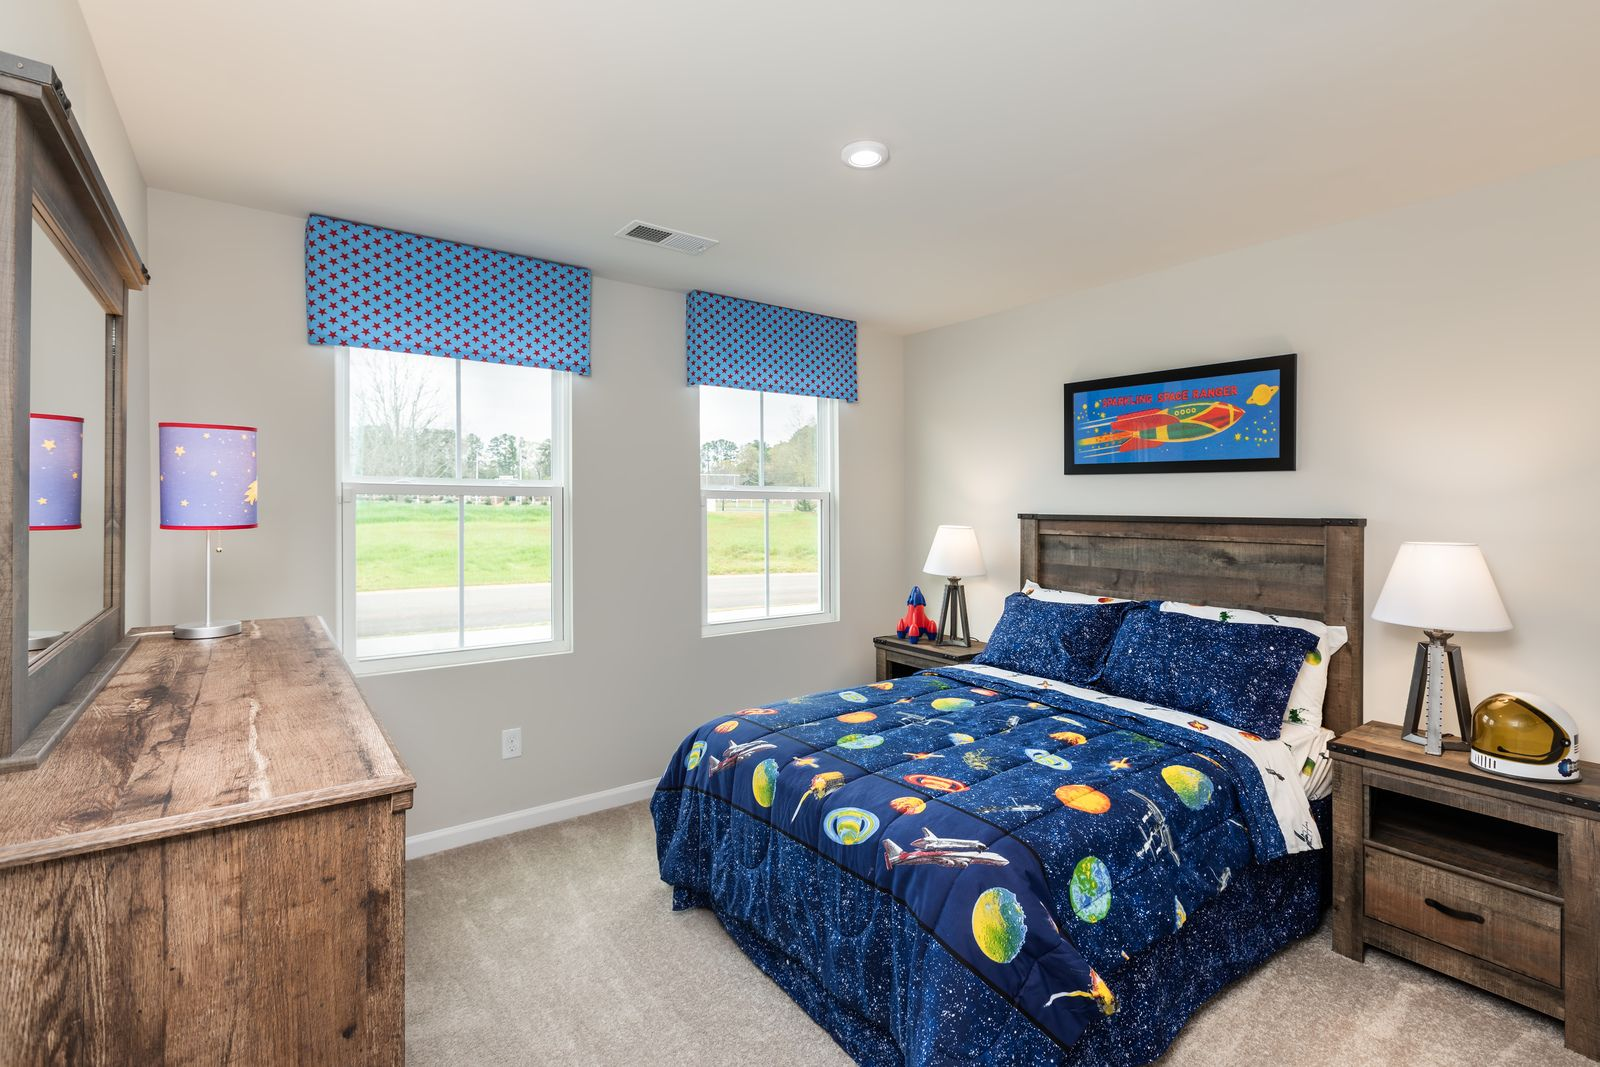 Bedroom featured in the Spruce w/ Included Basement By Ryan Homes in Cincinnati, OH